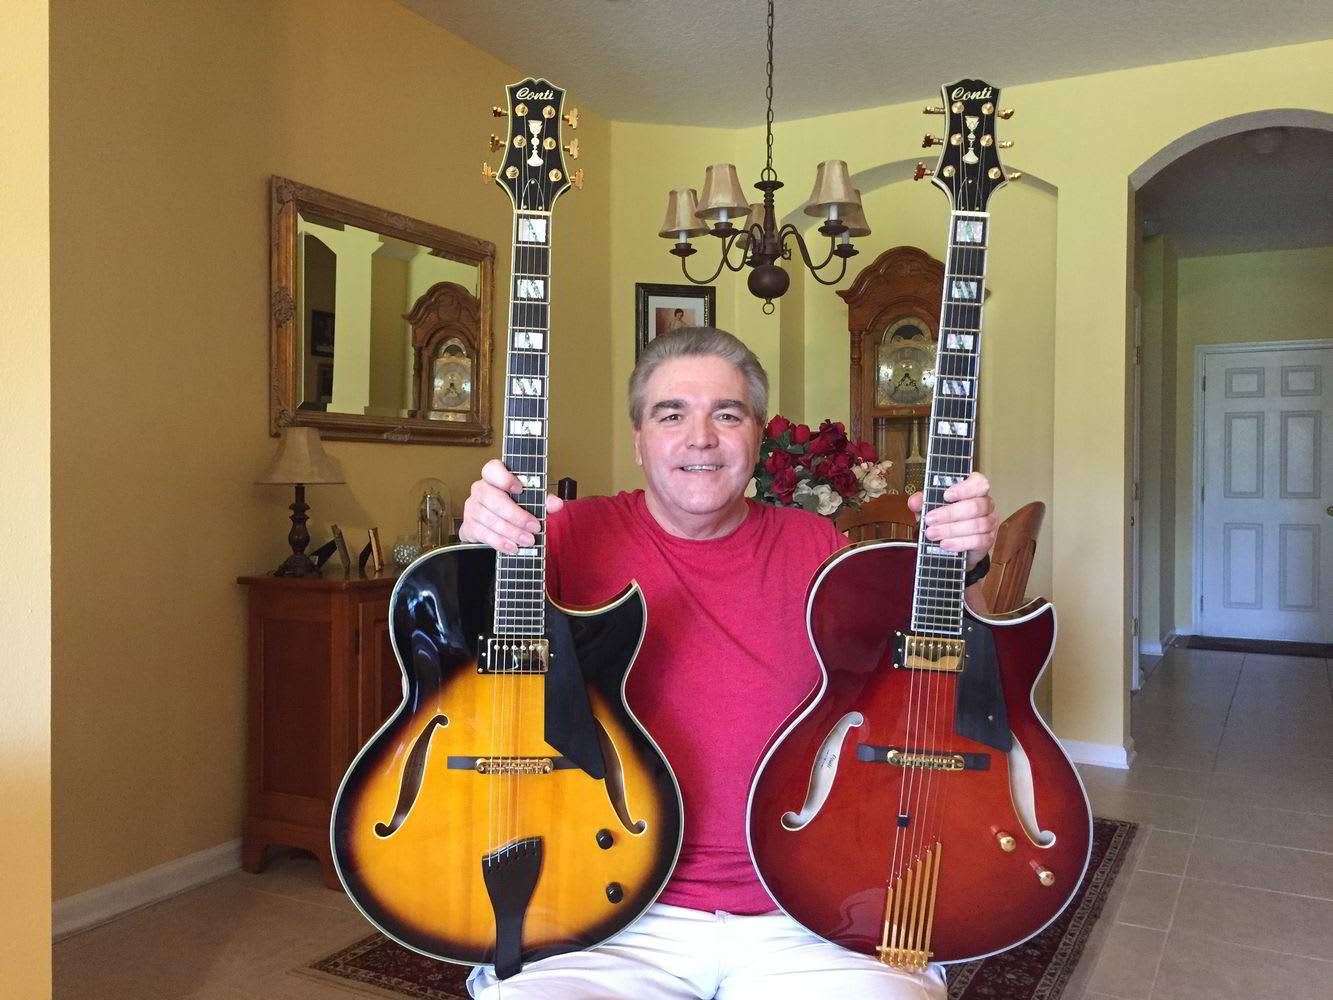 Gary Keniston with 2 Conti Guitars